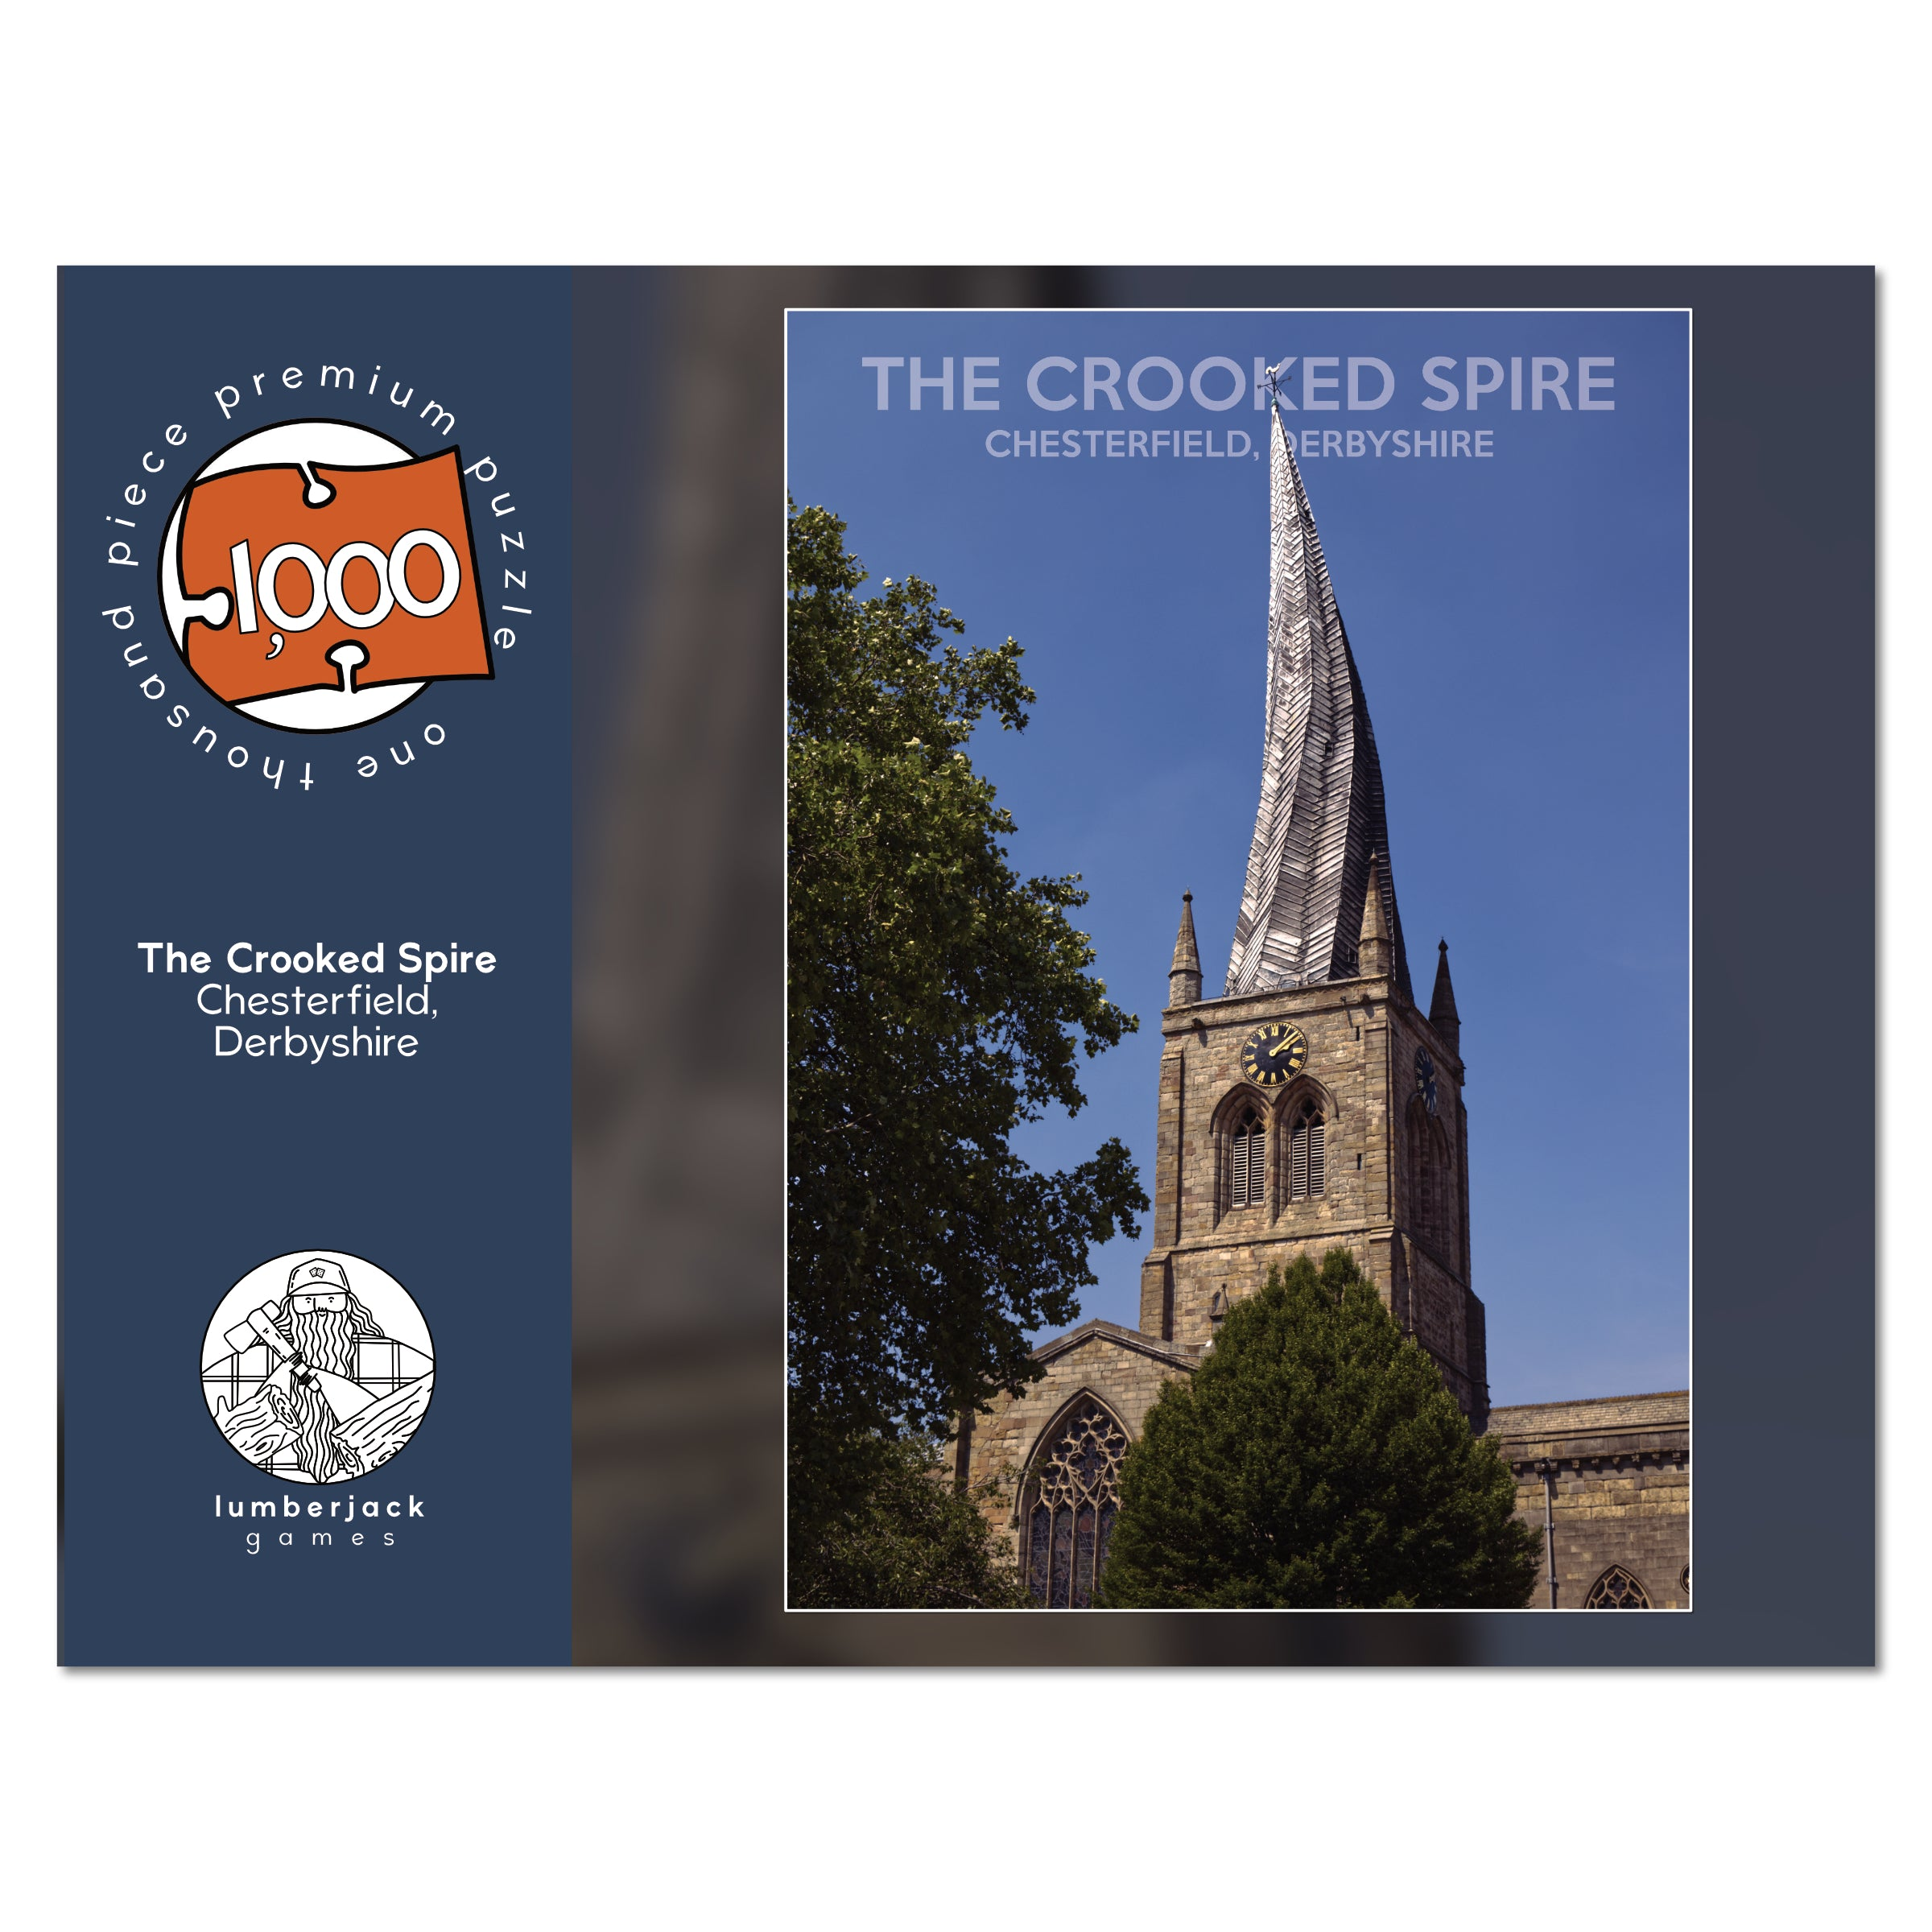 The Crooked Spire, Chesterfield - 1,000 Piece Premium Jigsaw Puzzle